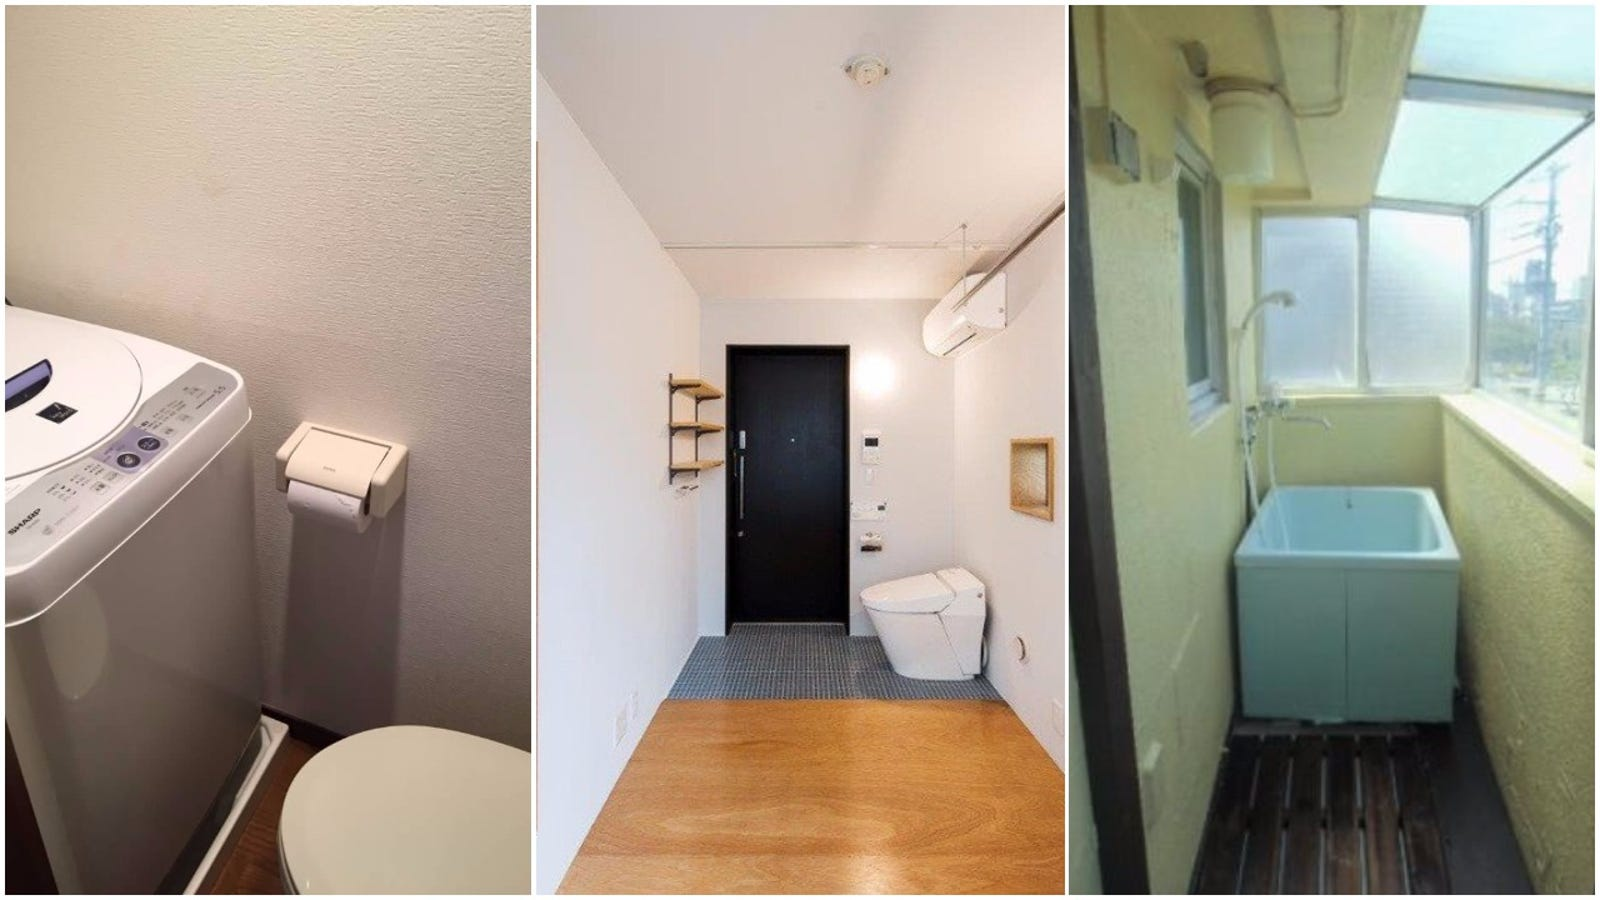 Japan's Crappiest Apartments